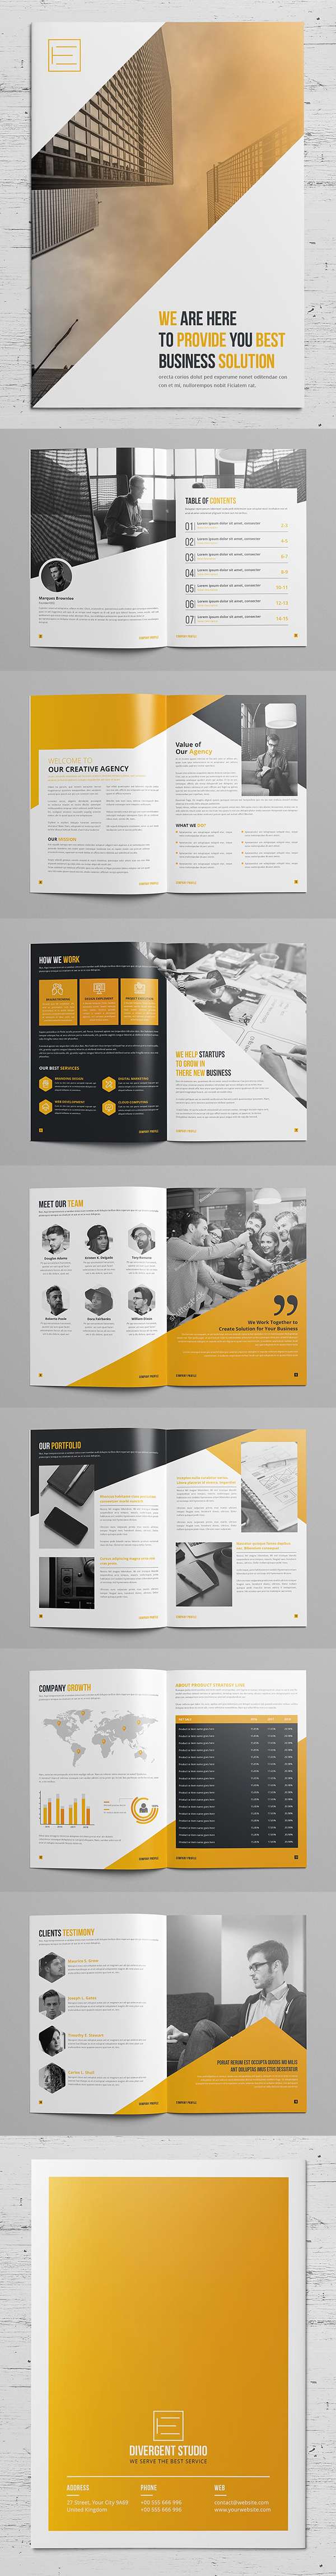 100 Professional Corporate Brochure Templates - 52